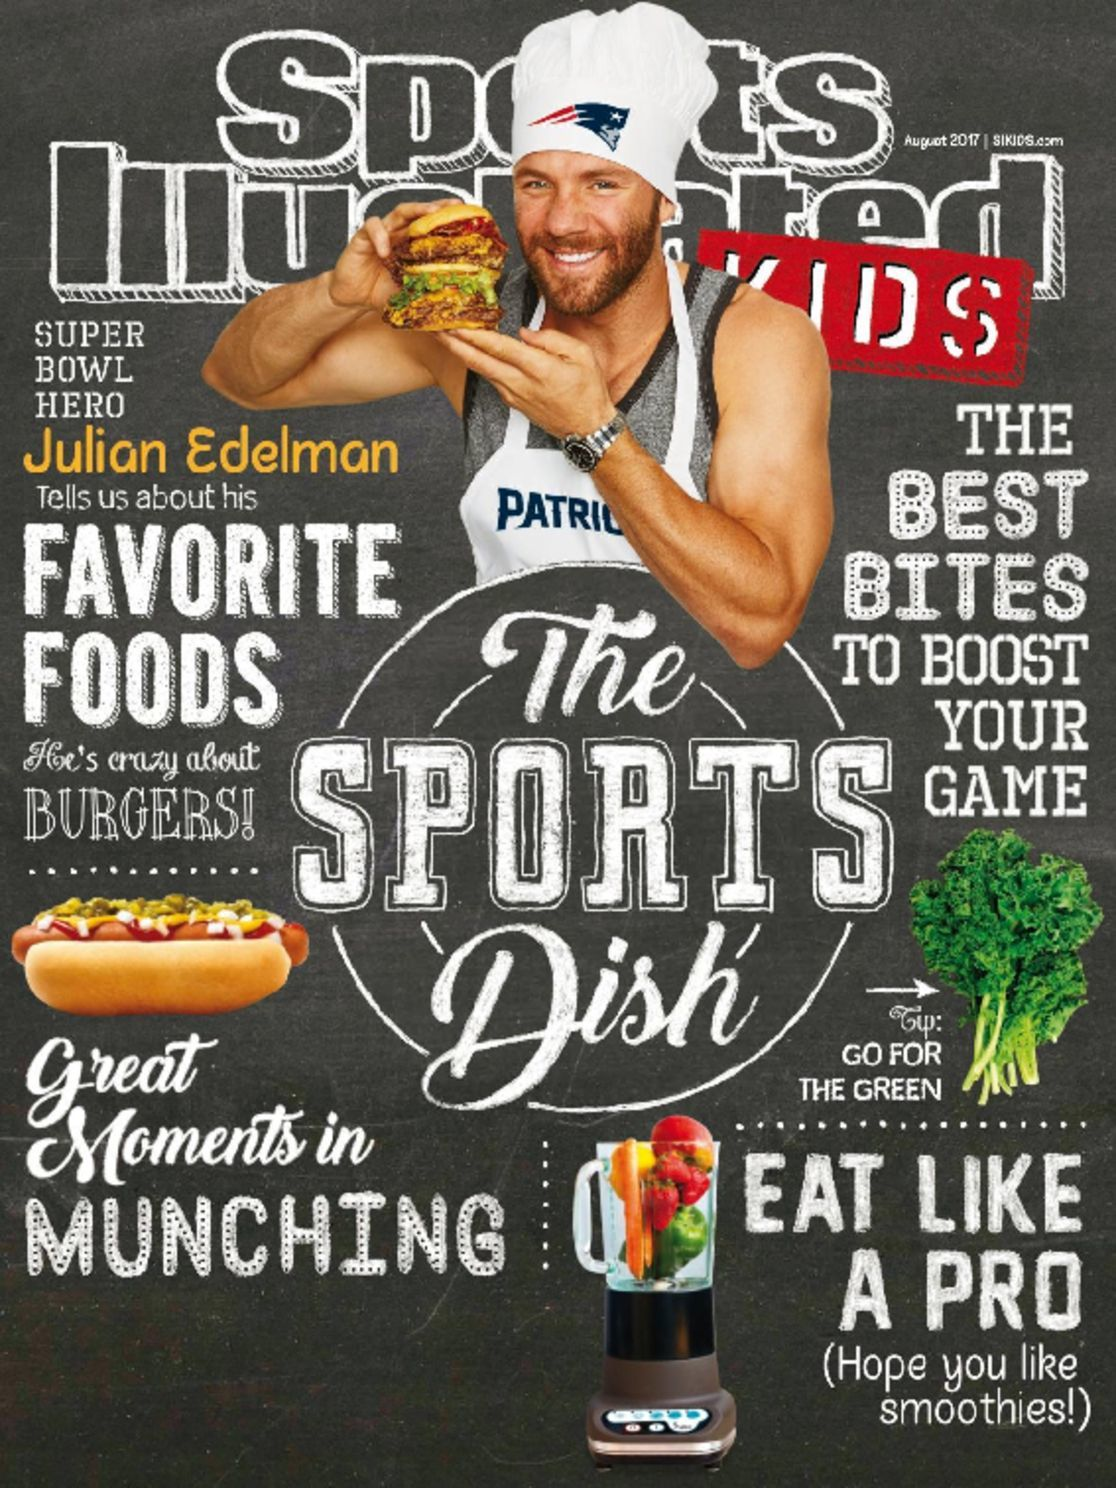 Today's top Sports Illustrated coupon: Find sports Tickets What You Need. Get 4 coupons for